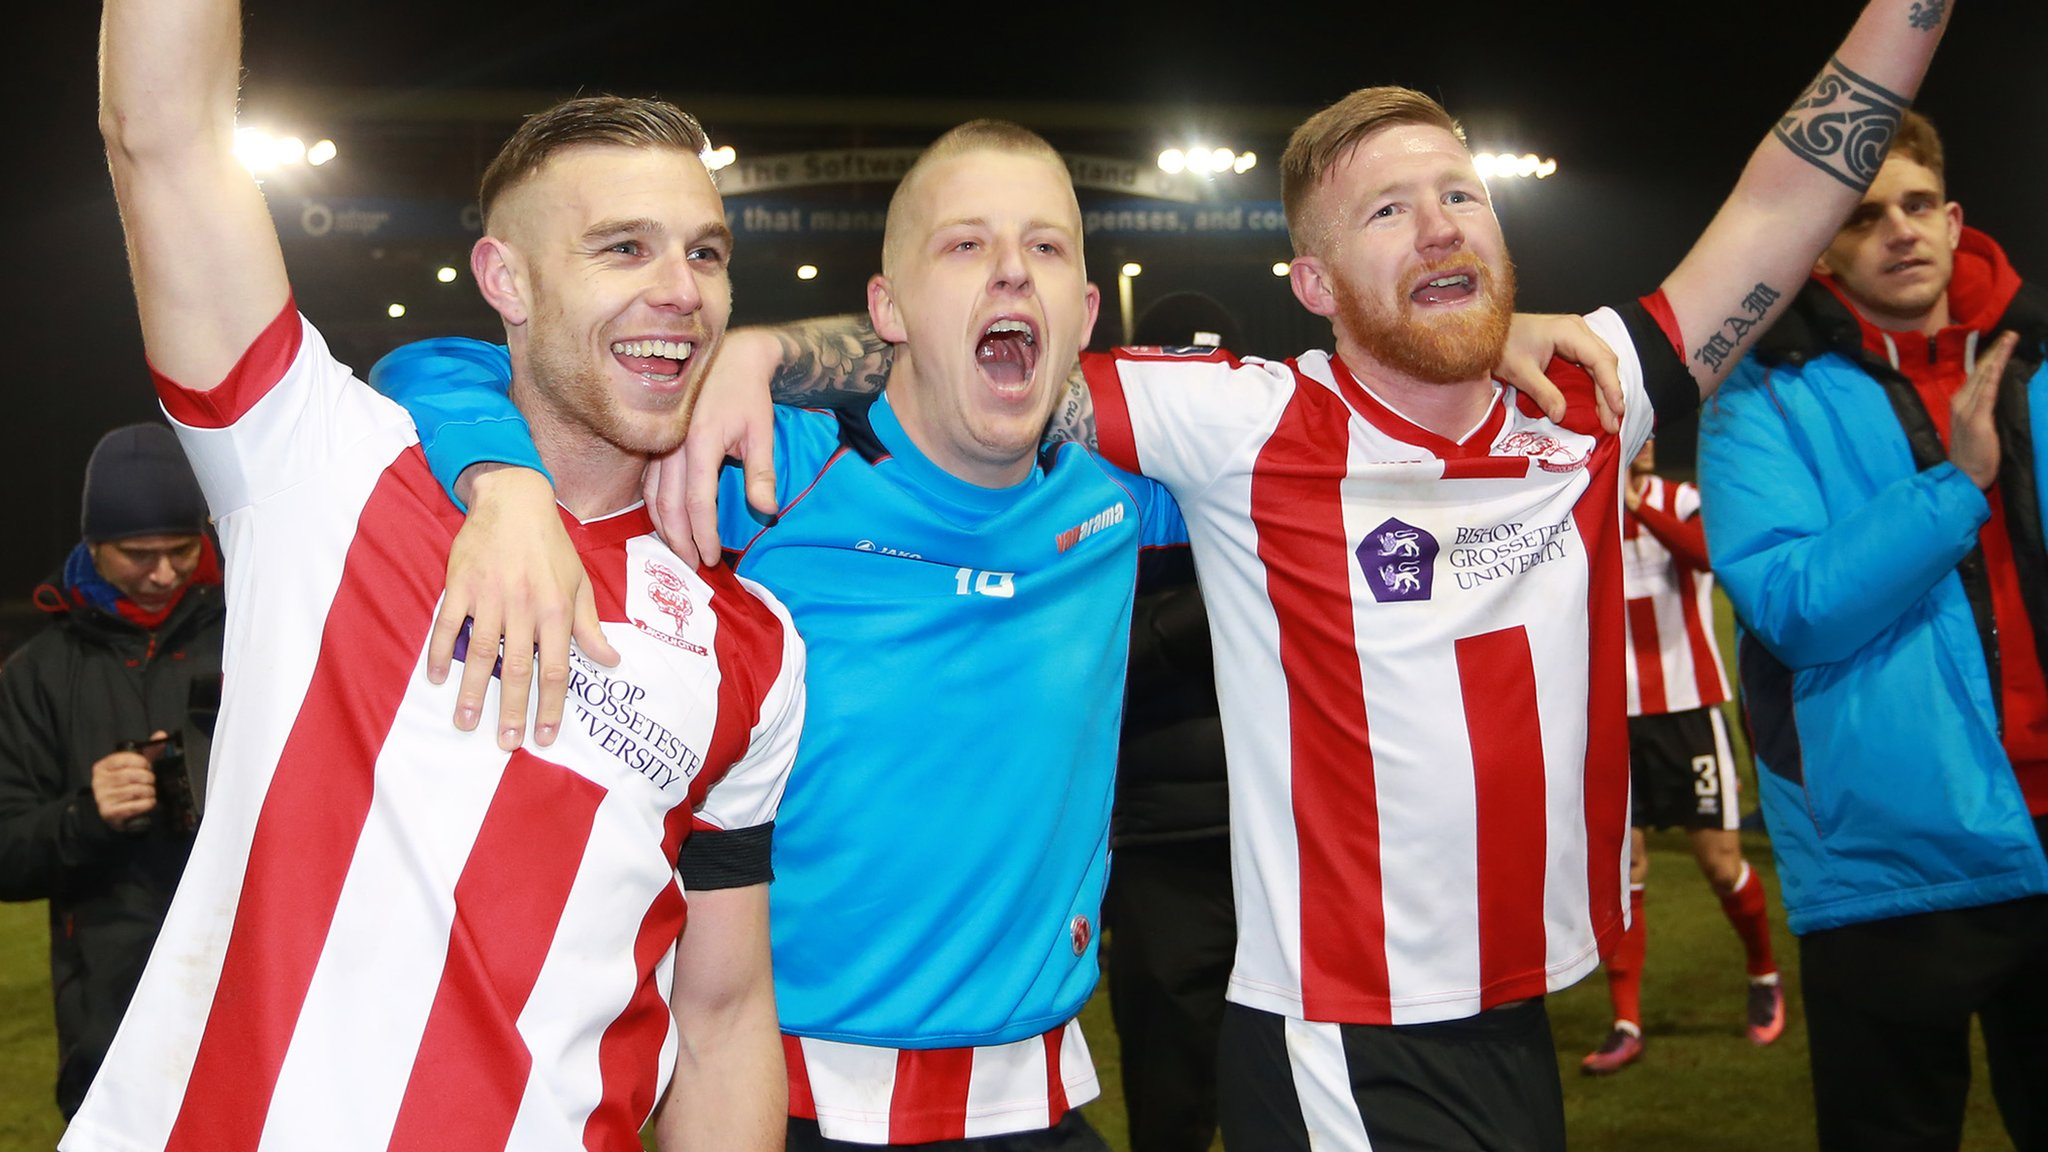 Lincoln hit late winner to knock out Ipswich in FA Cup